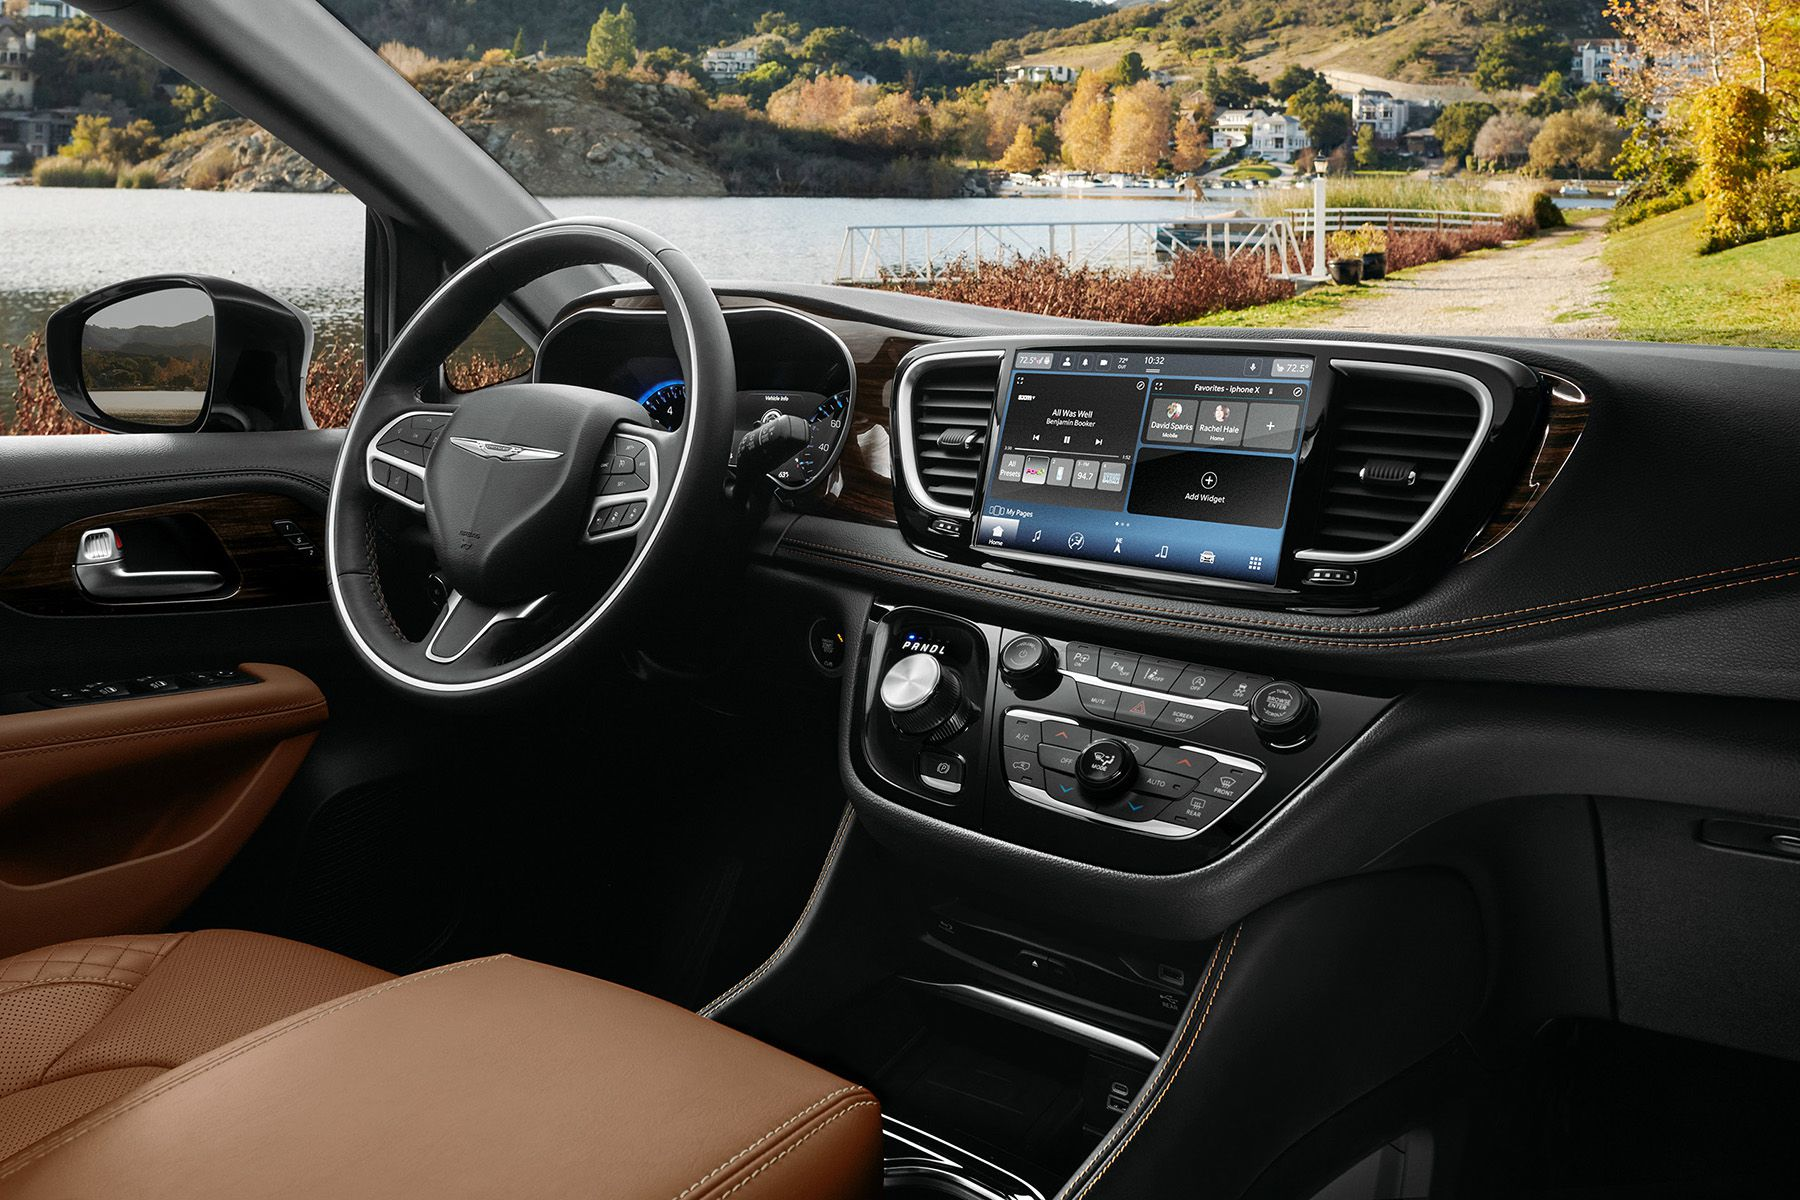 The interior of the 2021 Chrysler Pacifica Pinnacle model incl